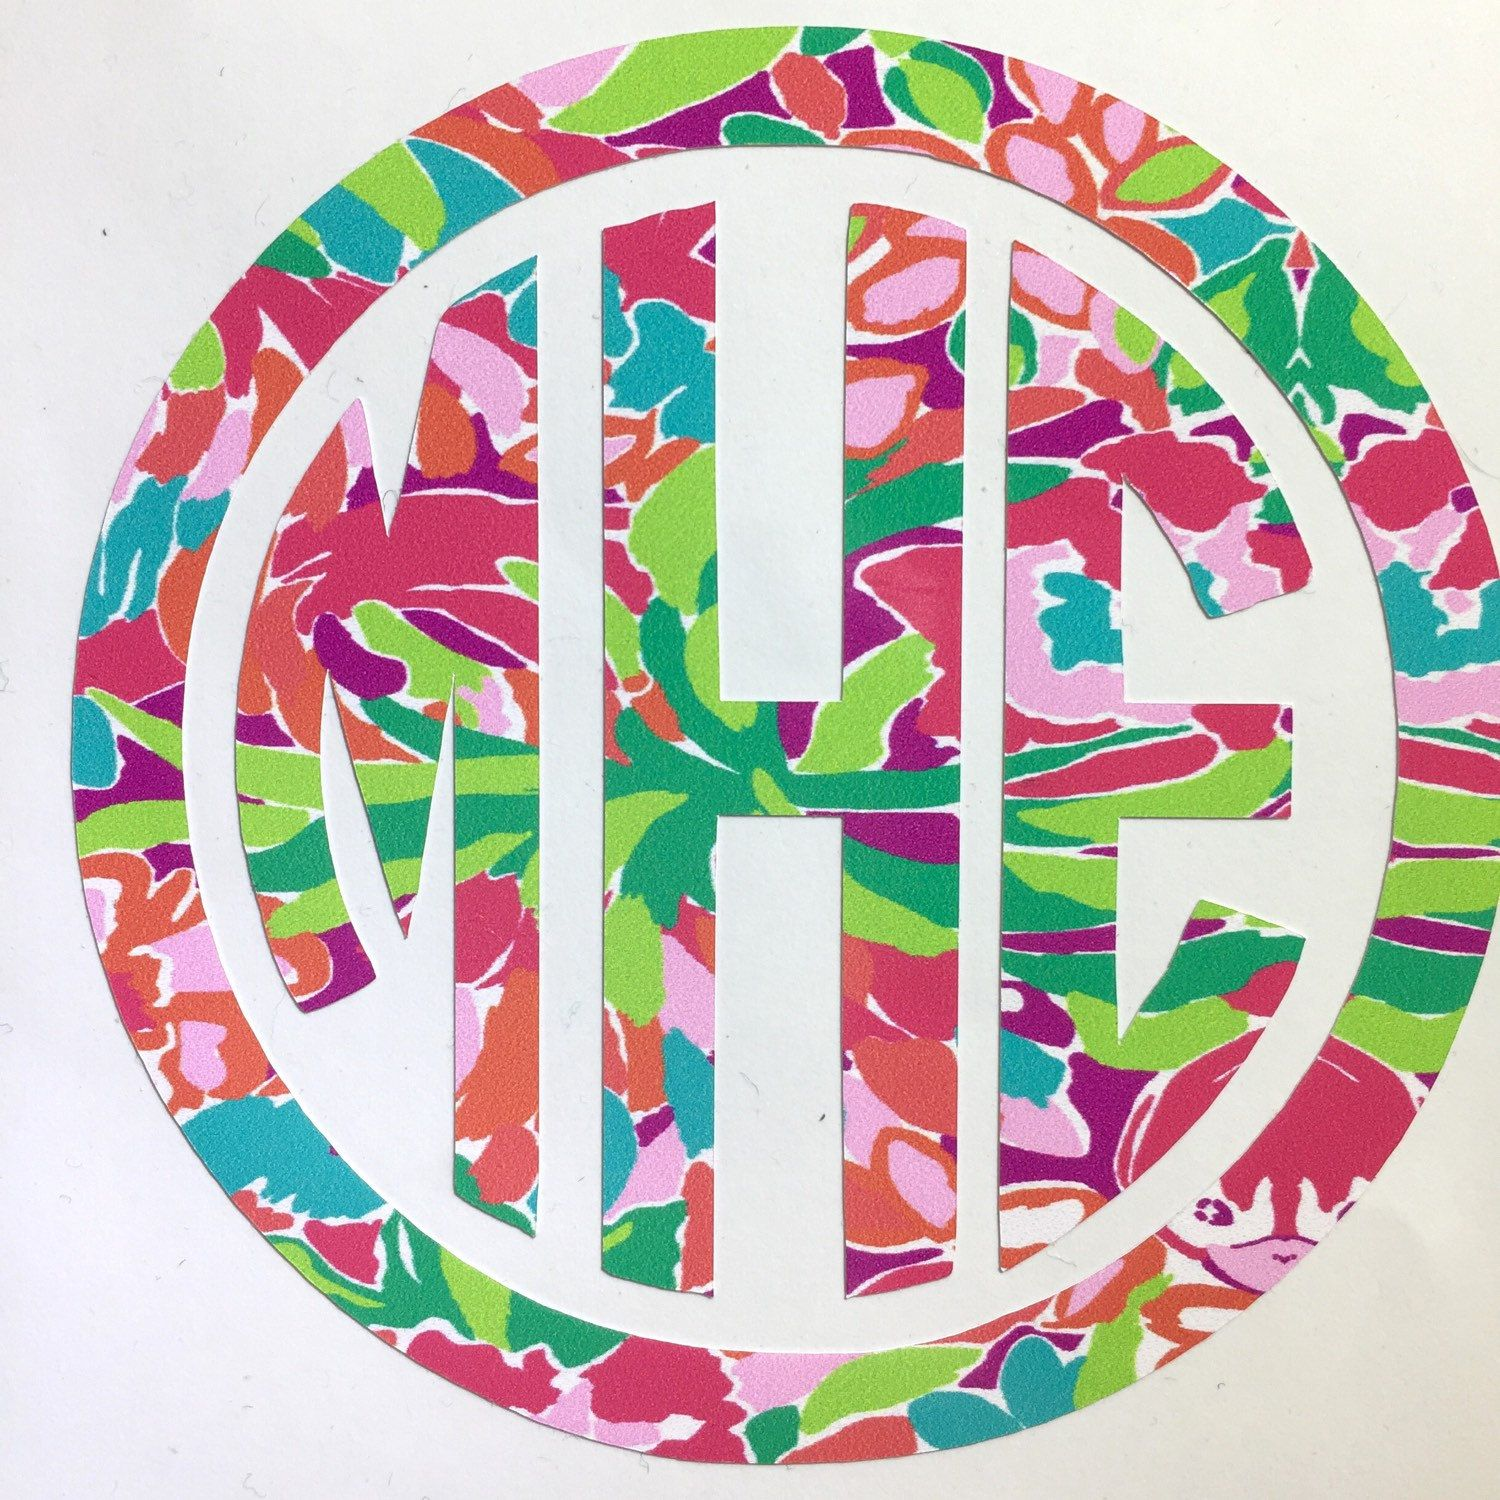 Love love love this circle monogram!  This one shown in LuLu is great for your MacBook, Yeti, IPad or any other hard surface!  Order yours today! #ssmonogramshop #etsy